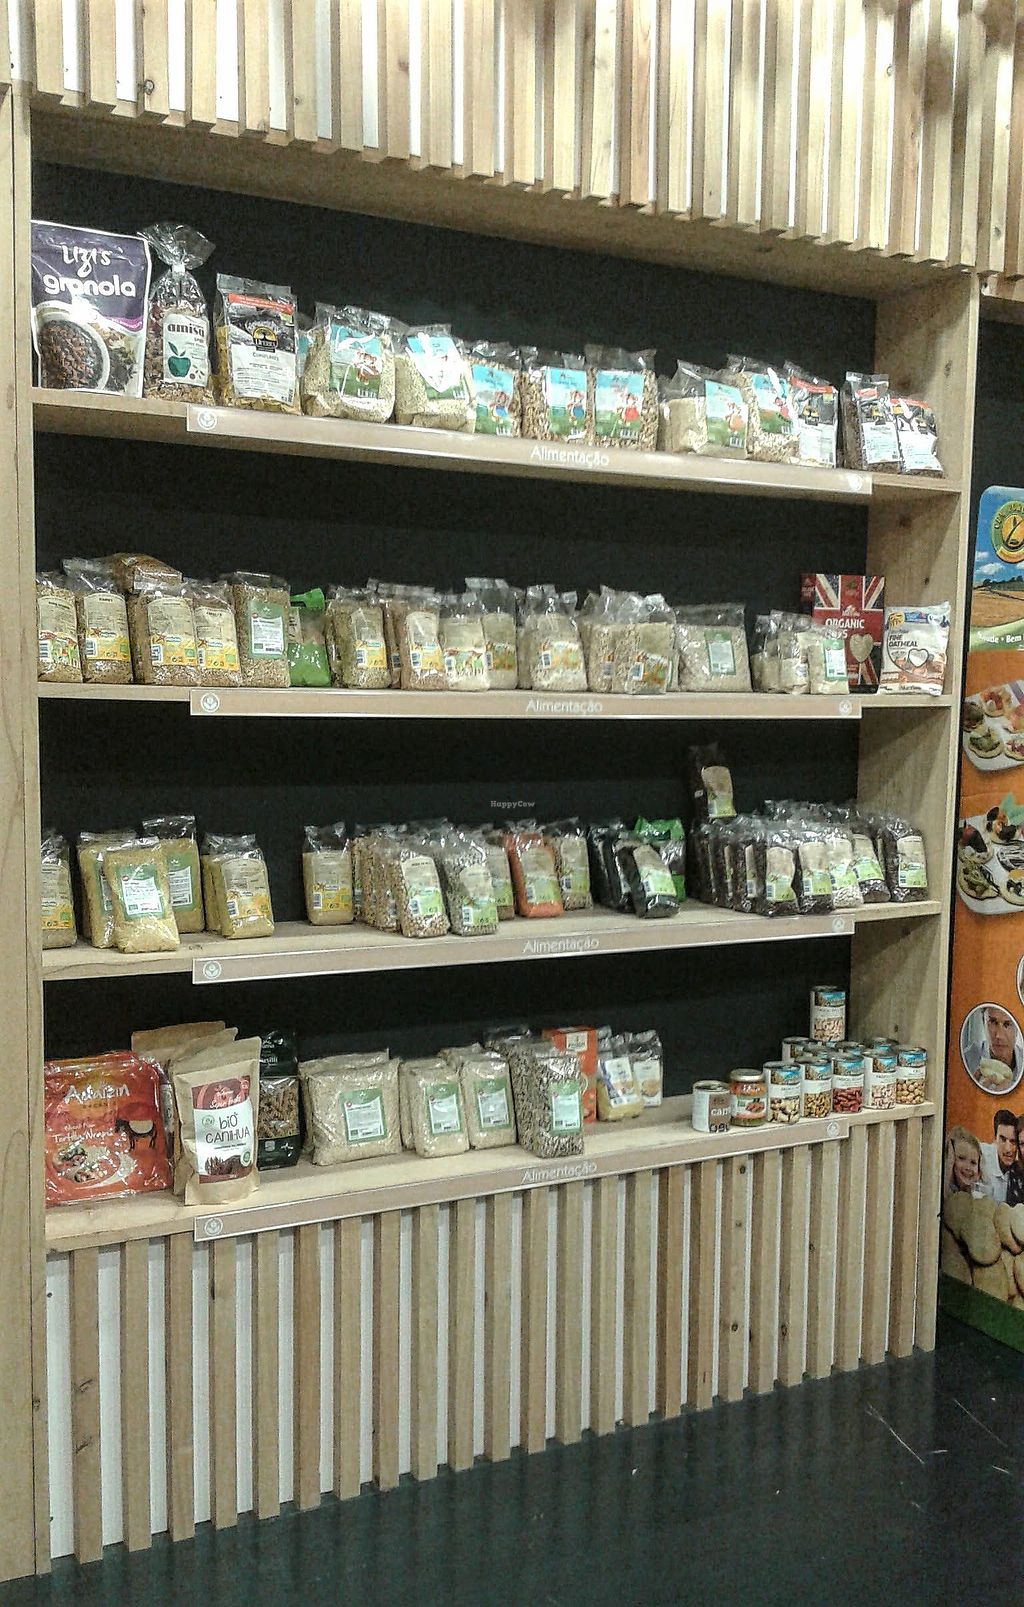 """Photo of Bioforma  by <a href=""""/members/profile/veganmargarida"""">veganmargarida</a> <br/>Decent grain and cereal section <br/> September 6, 2017  - <a href='/contact/abuse/image/87220/301617'>Report</a>"""